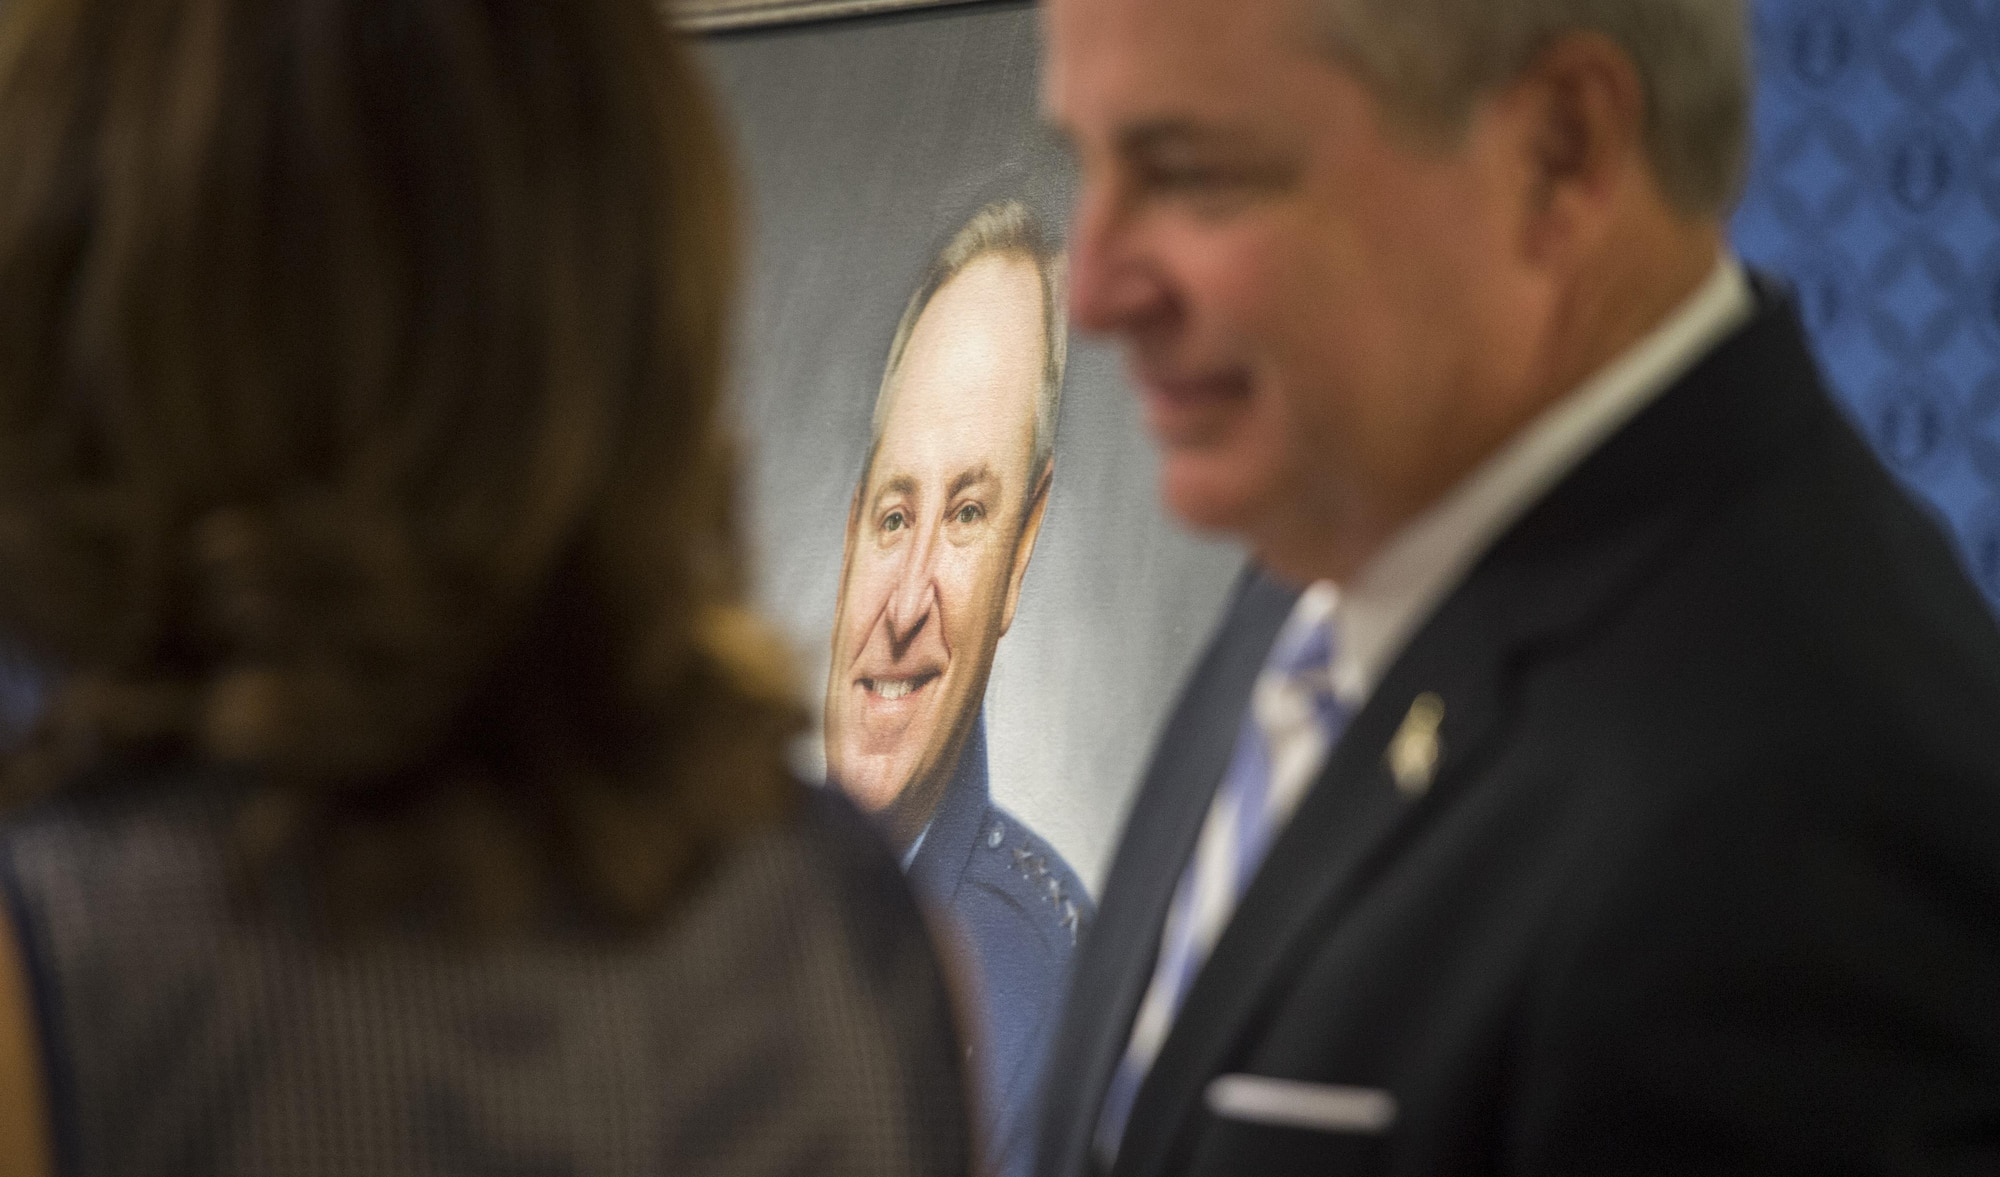 The official portrait of retired Gen. Mark A. Welsh III, former chief of staff of the Air Force, is unveiled during a ceremony at the Pentagon, Washington, D.C., Sept. 14, 2017. The portrait will be on display in the Pentagon's Arnold Corridor alongside the portraits of the other former Air Force chiefs of staff. (DoD photo by Tech. Sgt. Brigitte N. Brantley)